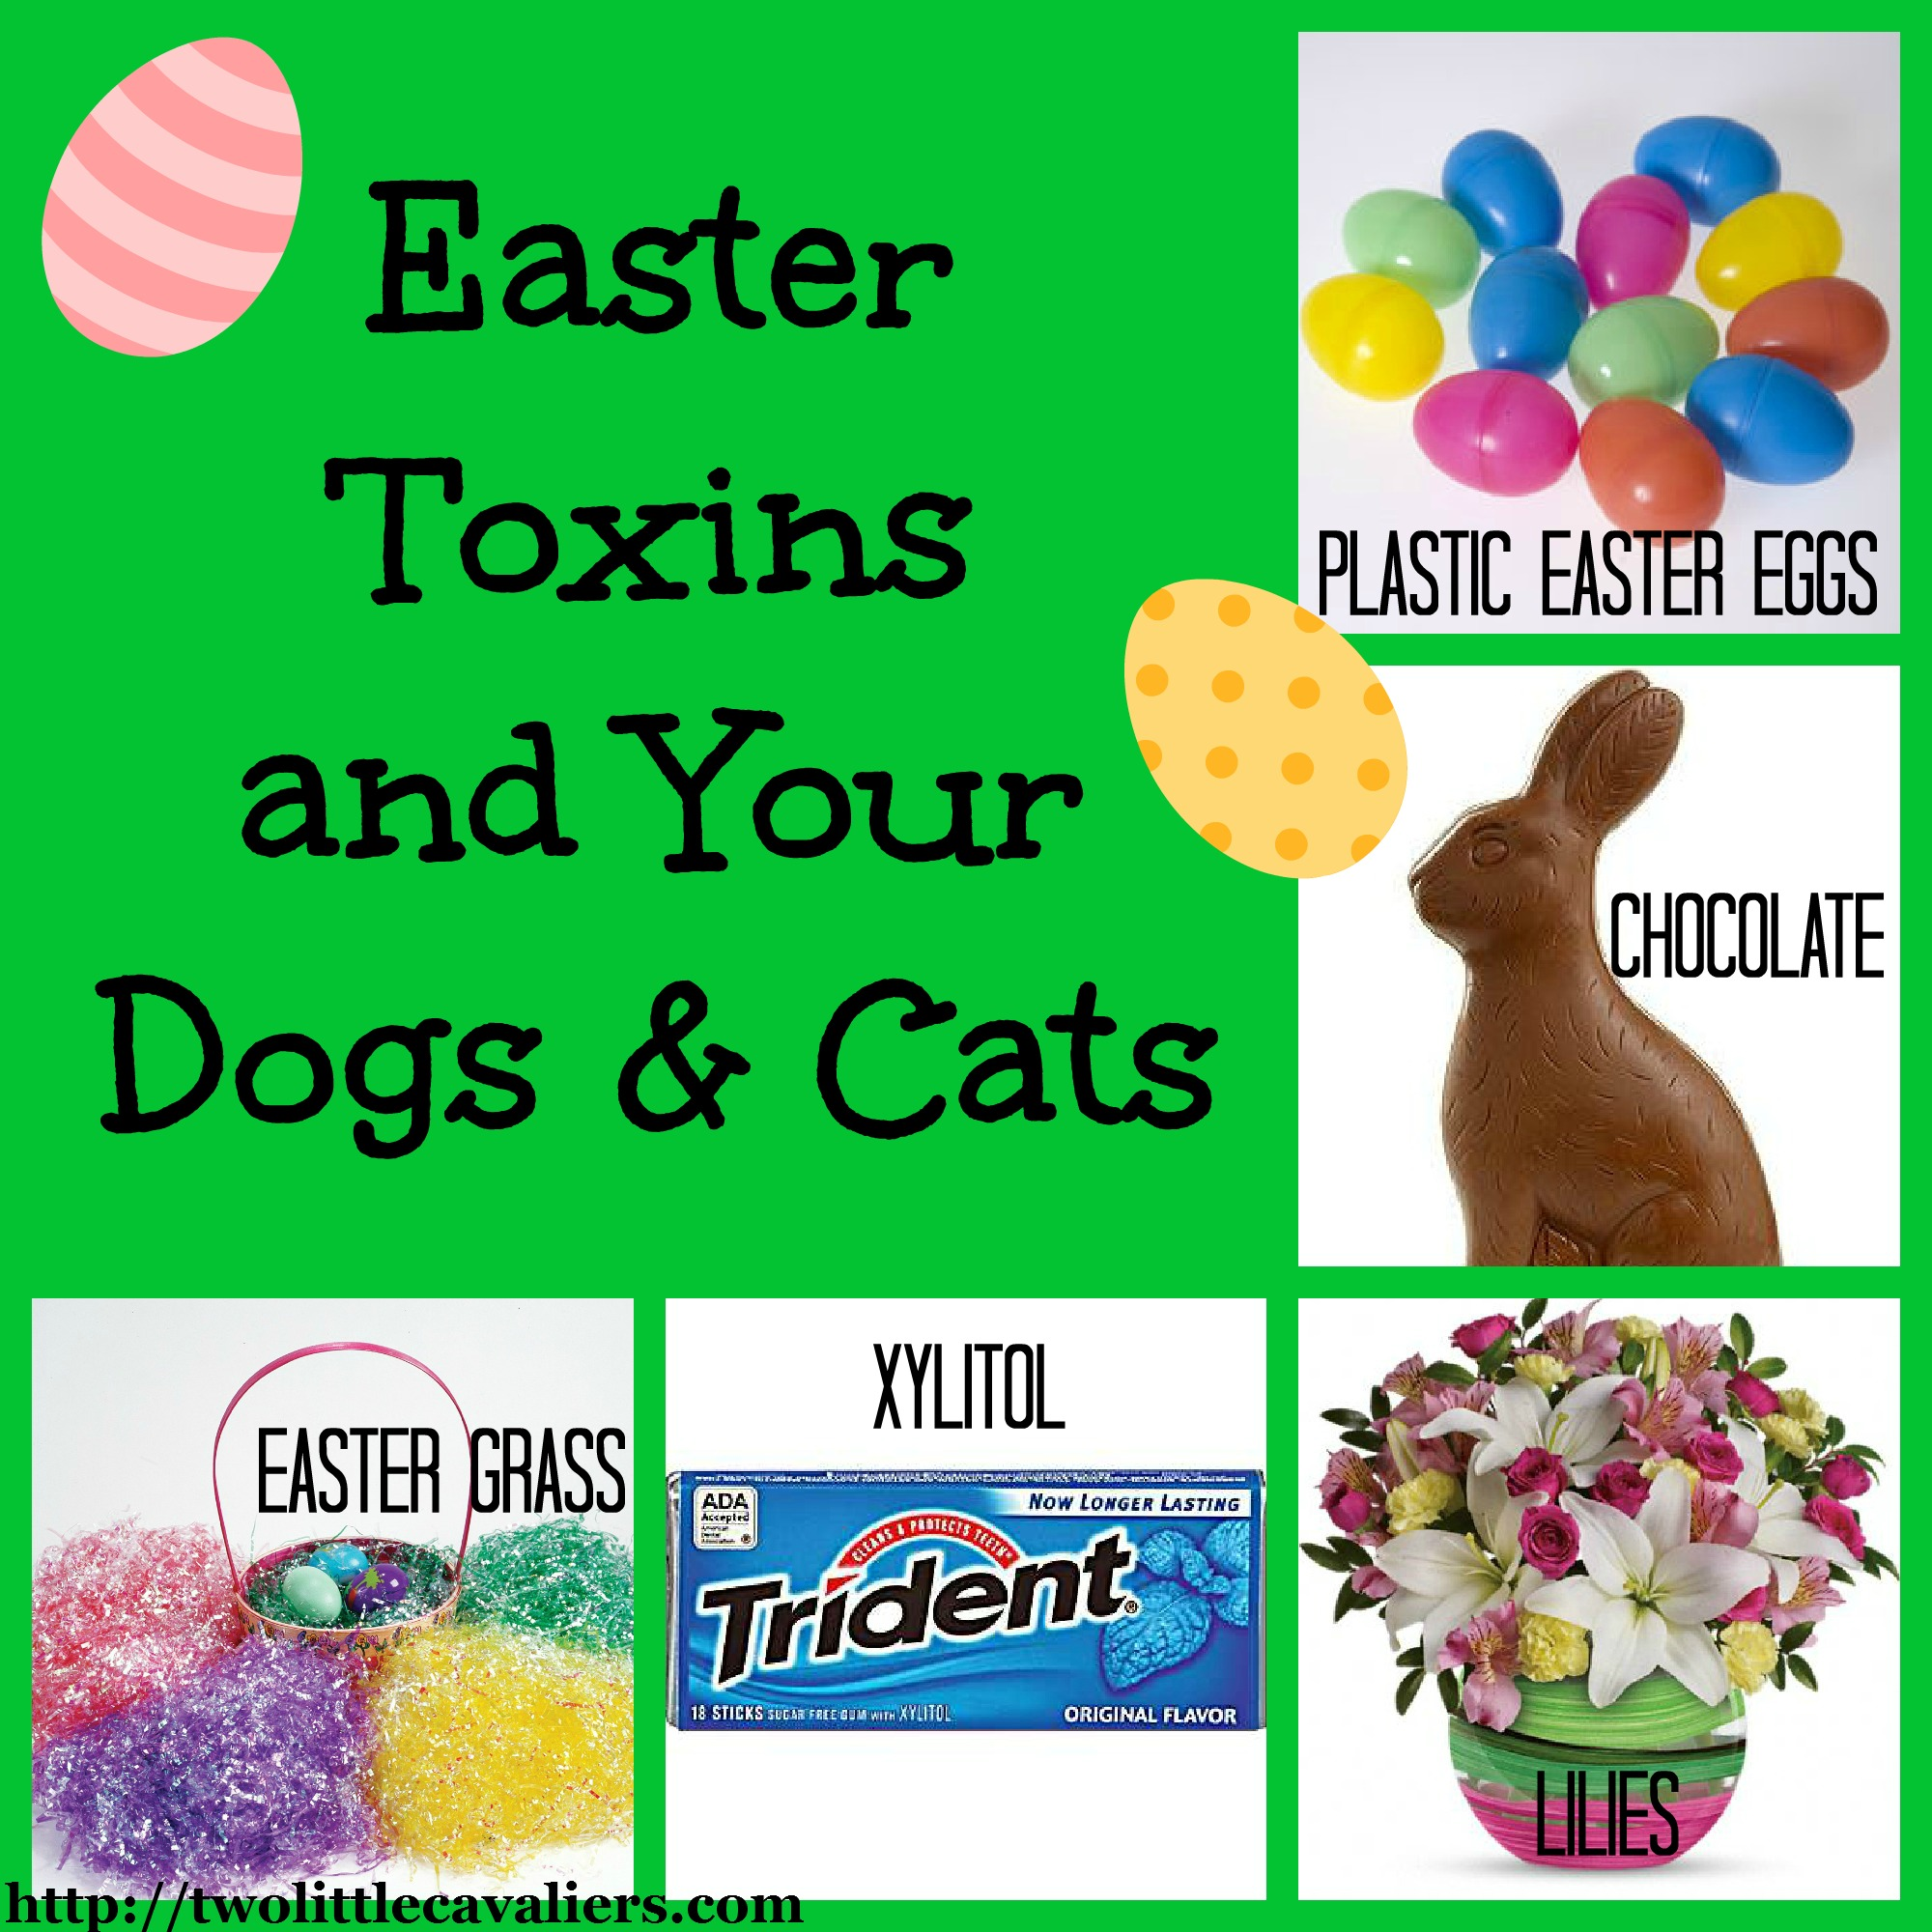 Easter toxins and your dogs and cats - Toxic plants for dogs and cats the danger behind flowers ...